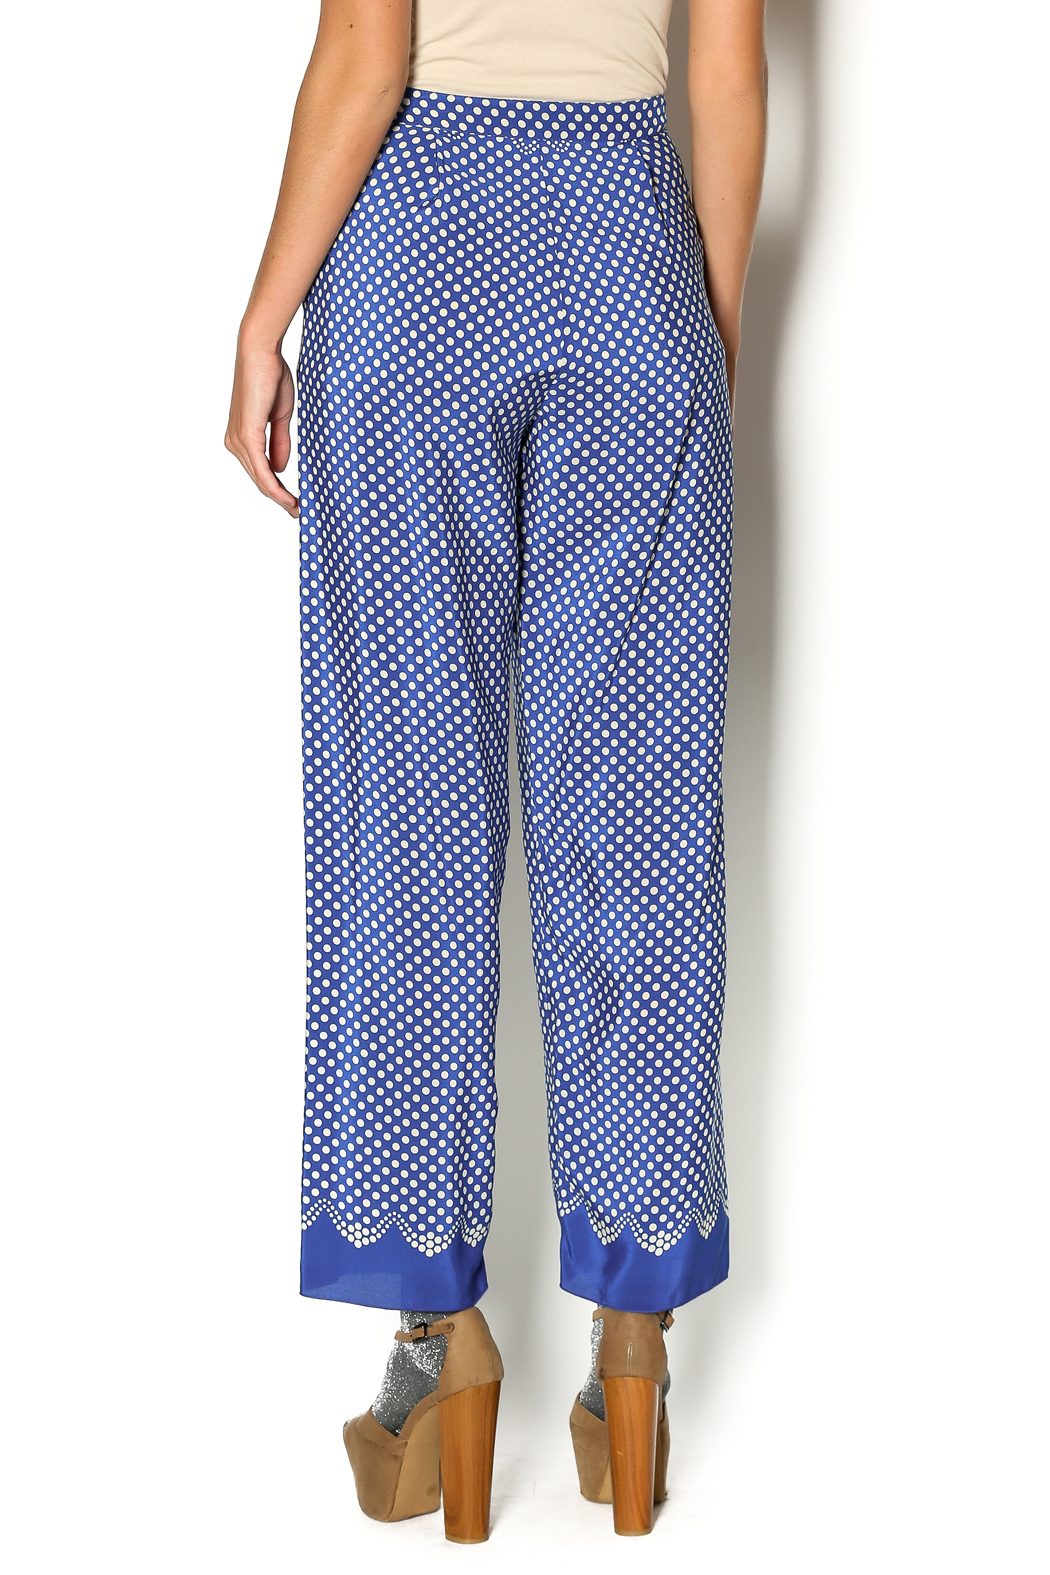 Anna Sui Aurora Polka Dot Pant - Back Cropped Image